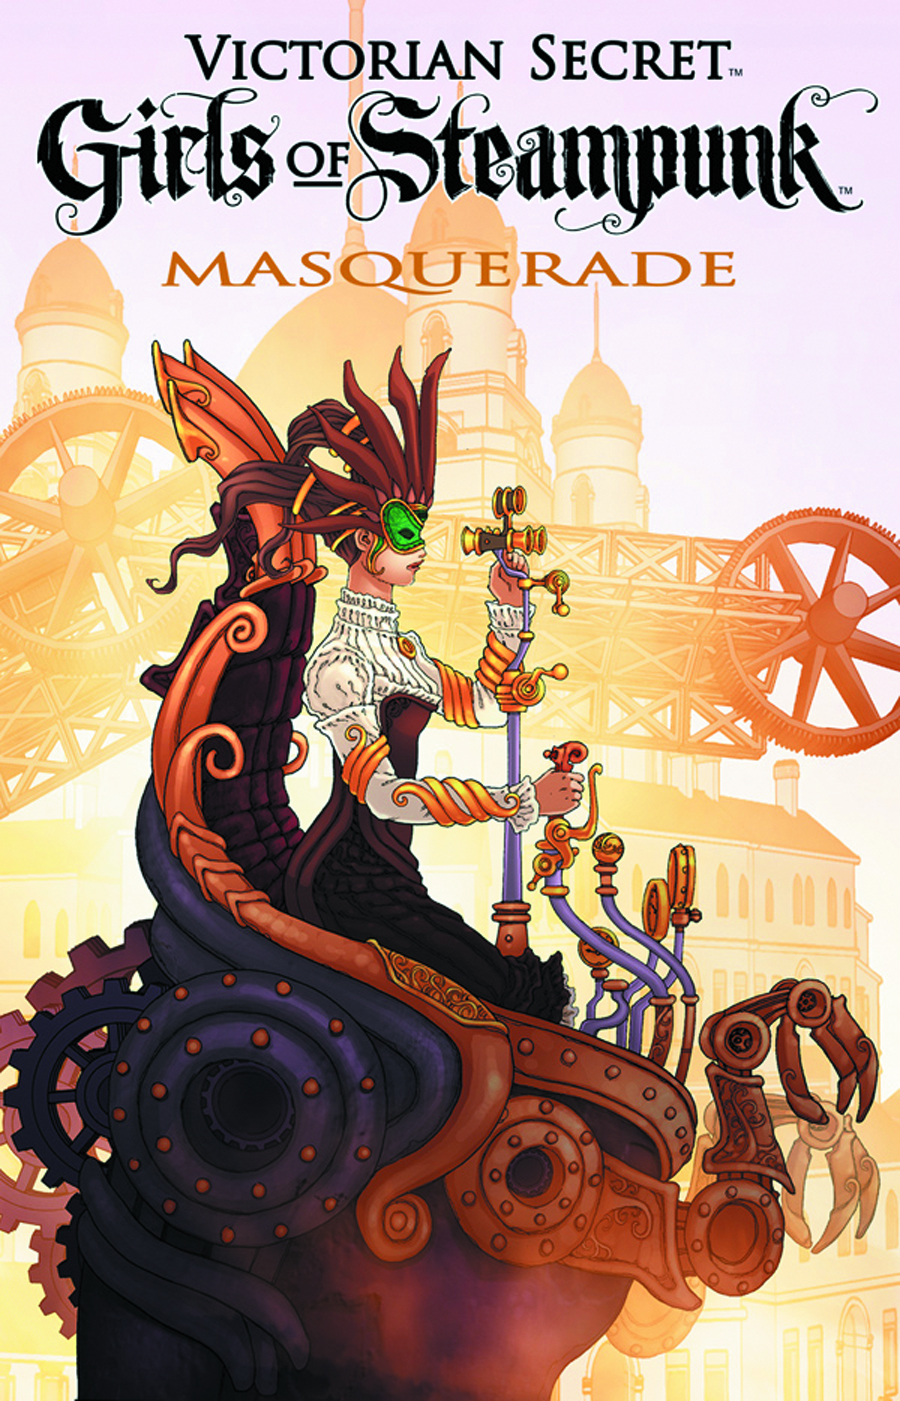 VICTORIAN SECRET GIRLS OF STEAMPUNK #1 MASQUERADE